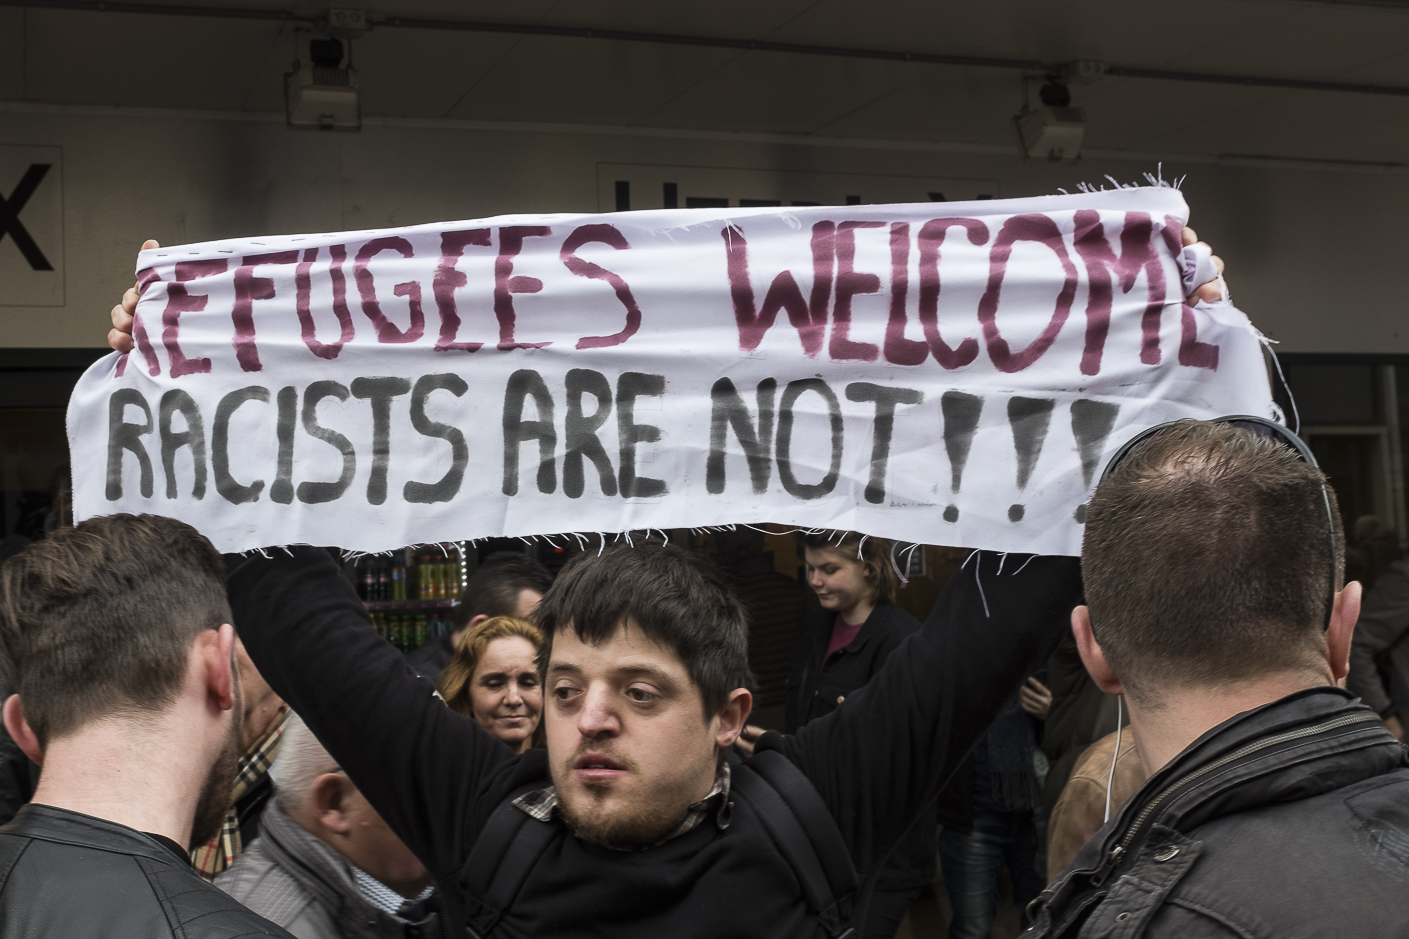 """A protester holds a sign, Refugees Welcome Racists Are Not"""" during a campaign rally for firebrand anti-Islam lawmaker Geert Wilders during the Dutch general elections in Heerlen, Netherlands, on March 11, 2017."""